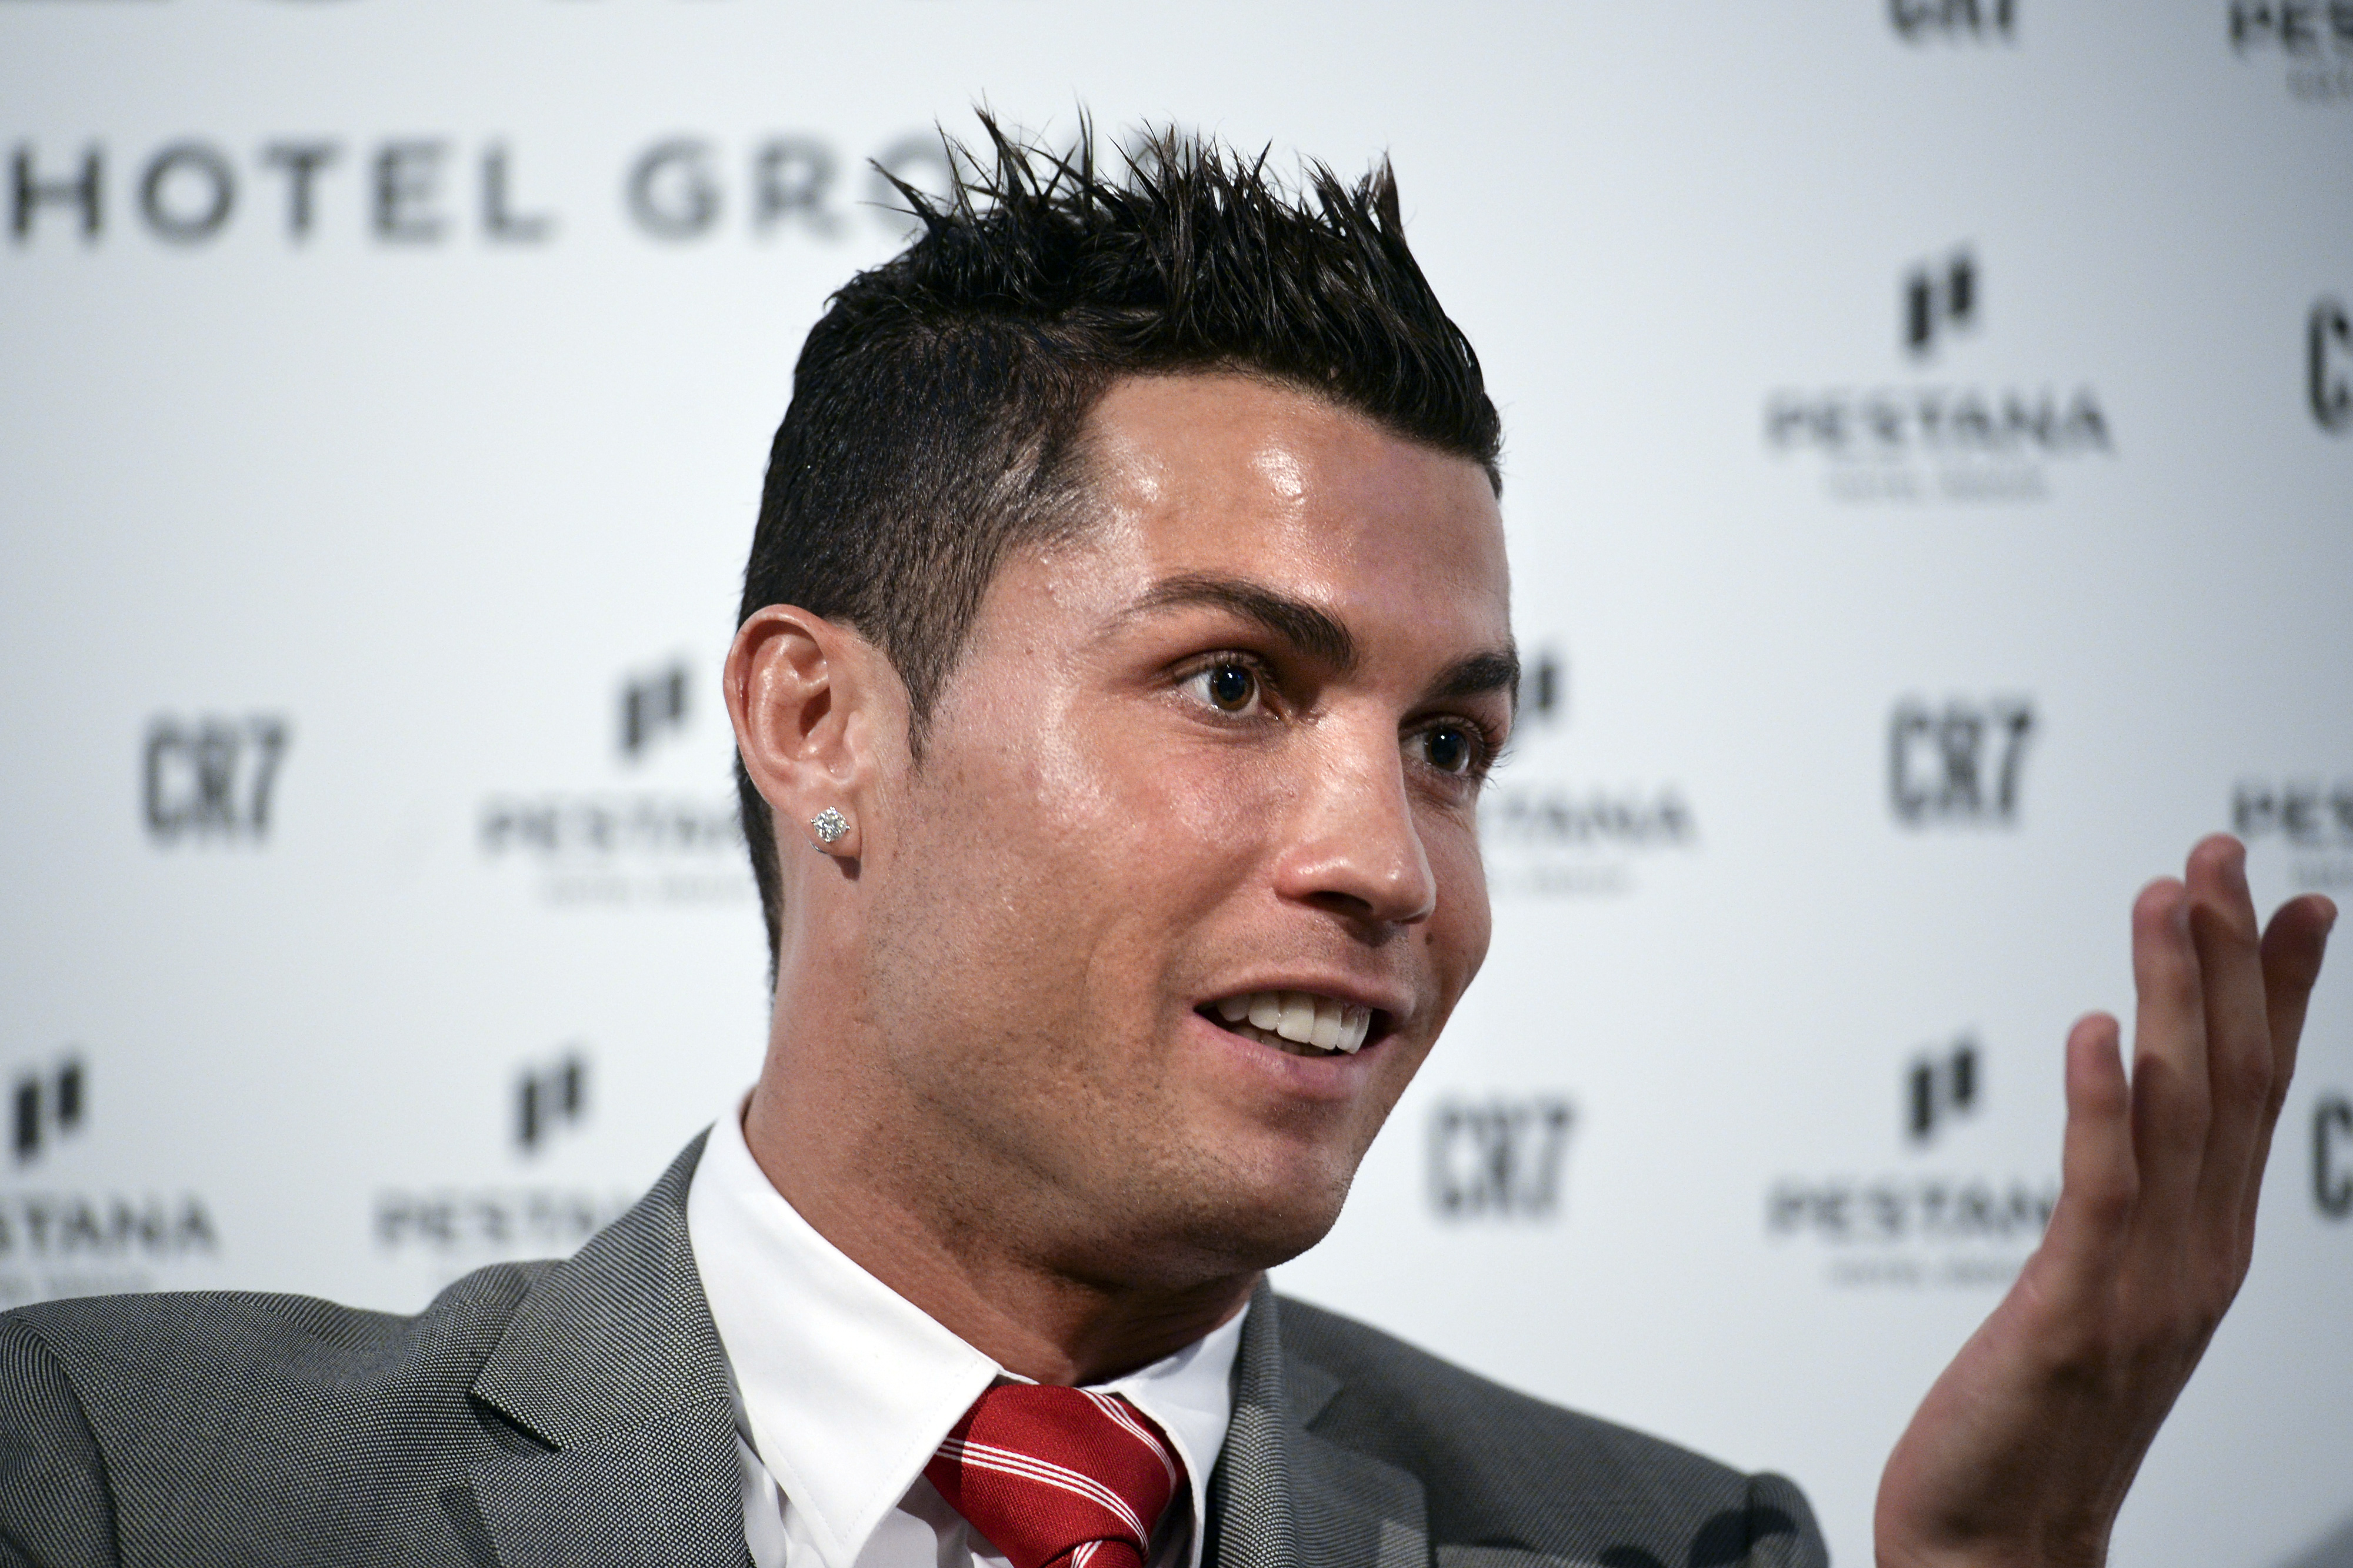 """Real Madrid's player Cristiano Ronaldo speaks during a press conference at Pestana Hotel Palace in Lisbon on December 17, 2015. Cristiano Ronaldo will invest over 37 million euros in the Pestana hotel group to create four new hotels with the """"CR7"""" logo in Portugal, Madrid and New York.   AFP PHOTO / PATRICIA DE MELO MOREIRA / AFP / PATRICIA DE MELO MOREIRA"""